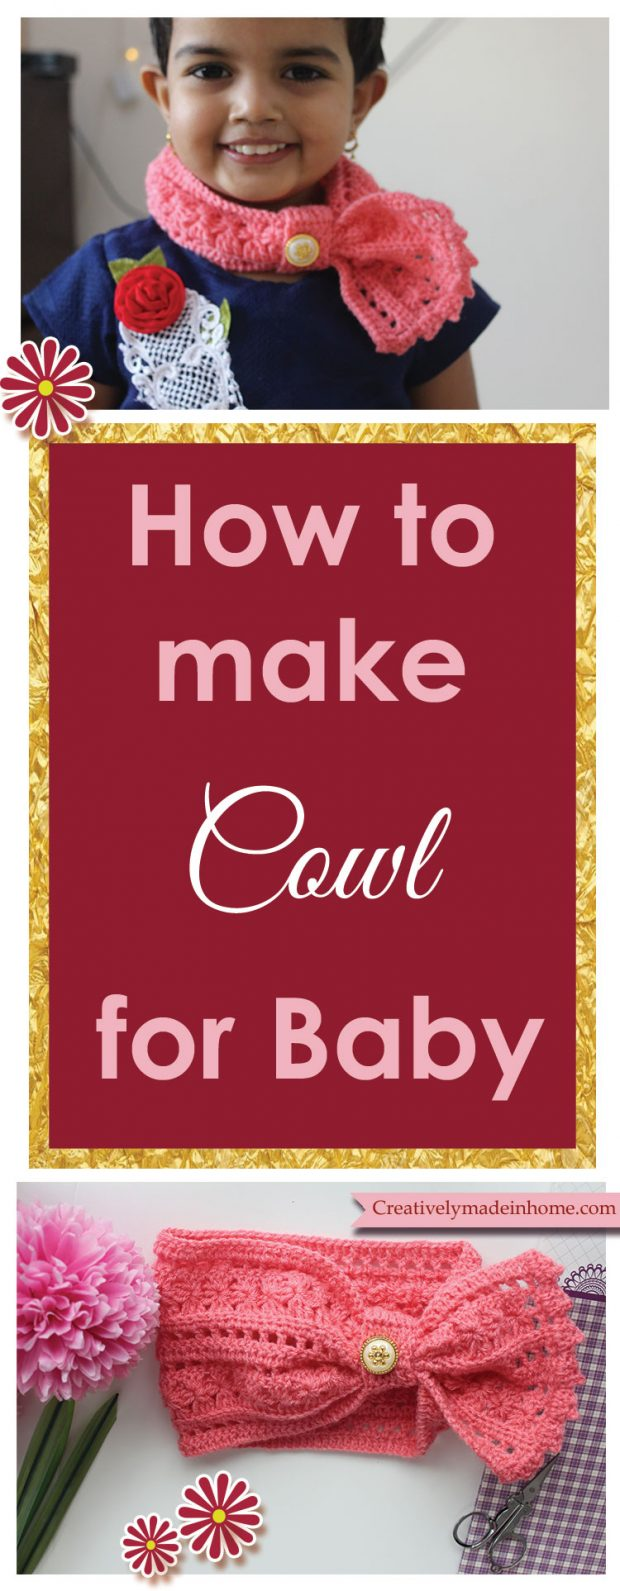 How-to-crochet-cowl-for-baby-feature-image